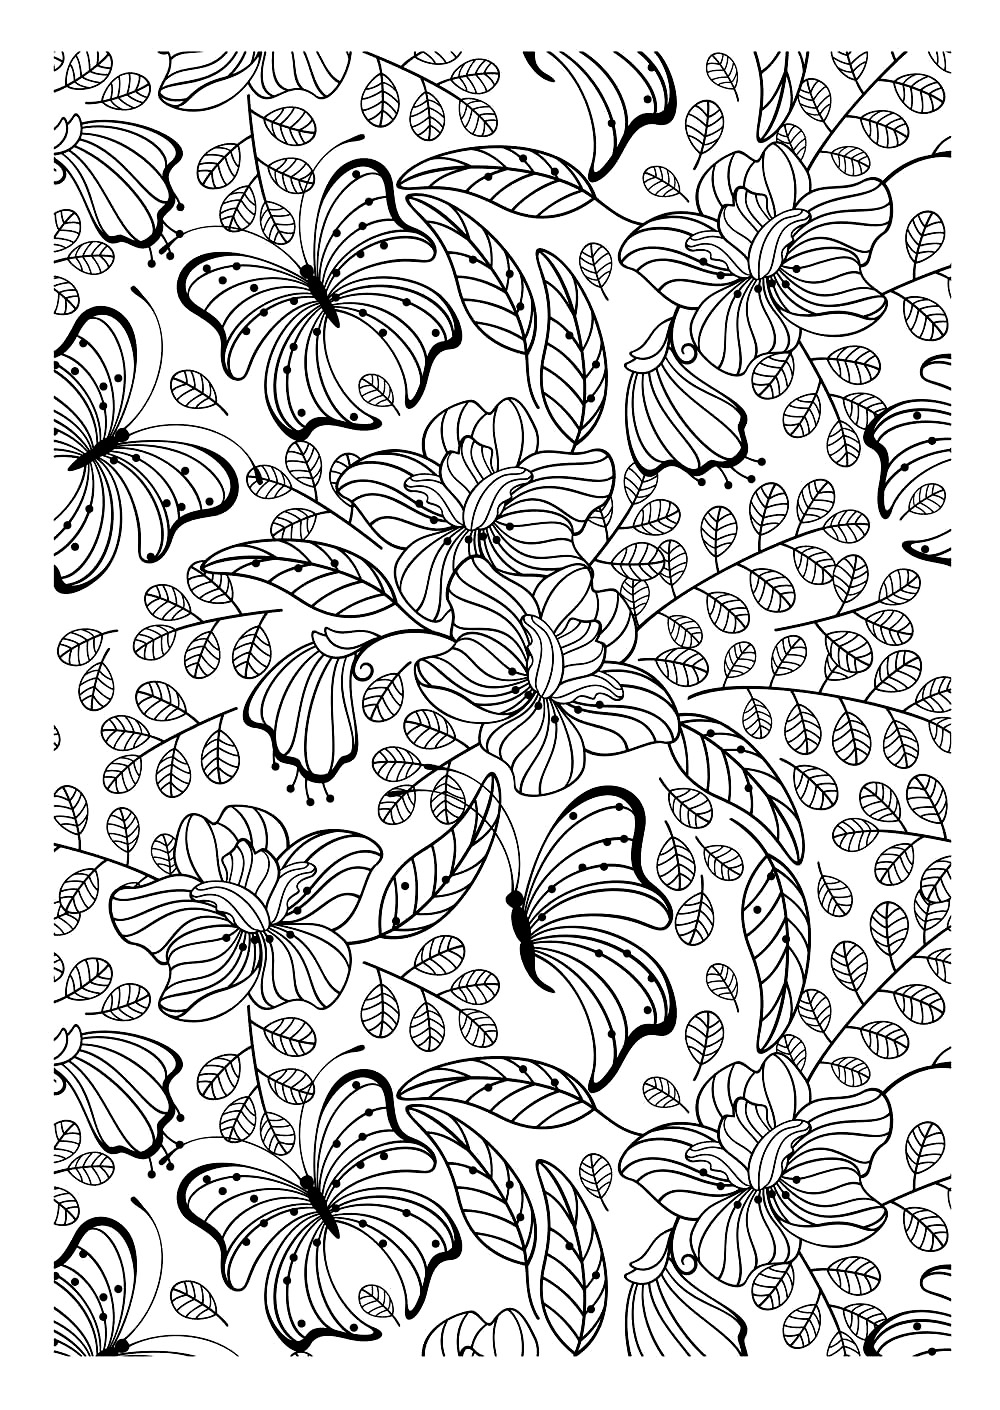 coloring page websites insects coloring pages for adults coloring adult page coloring websites